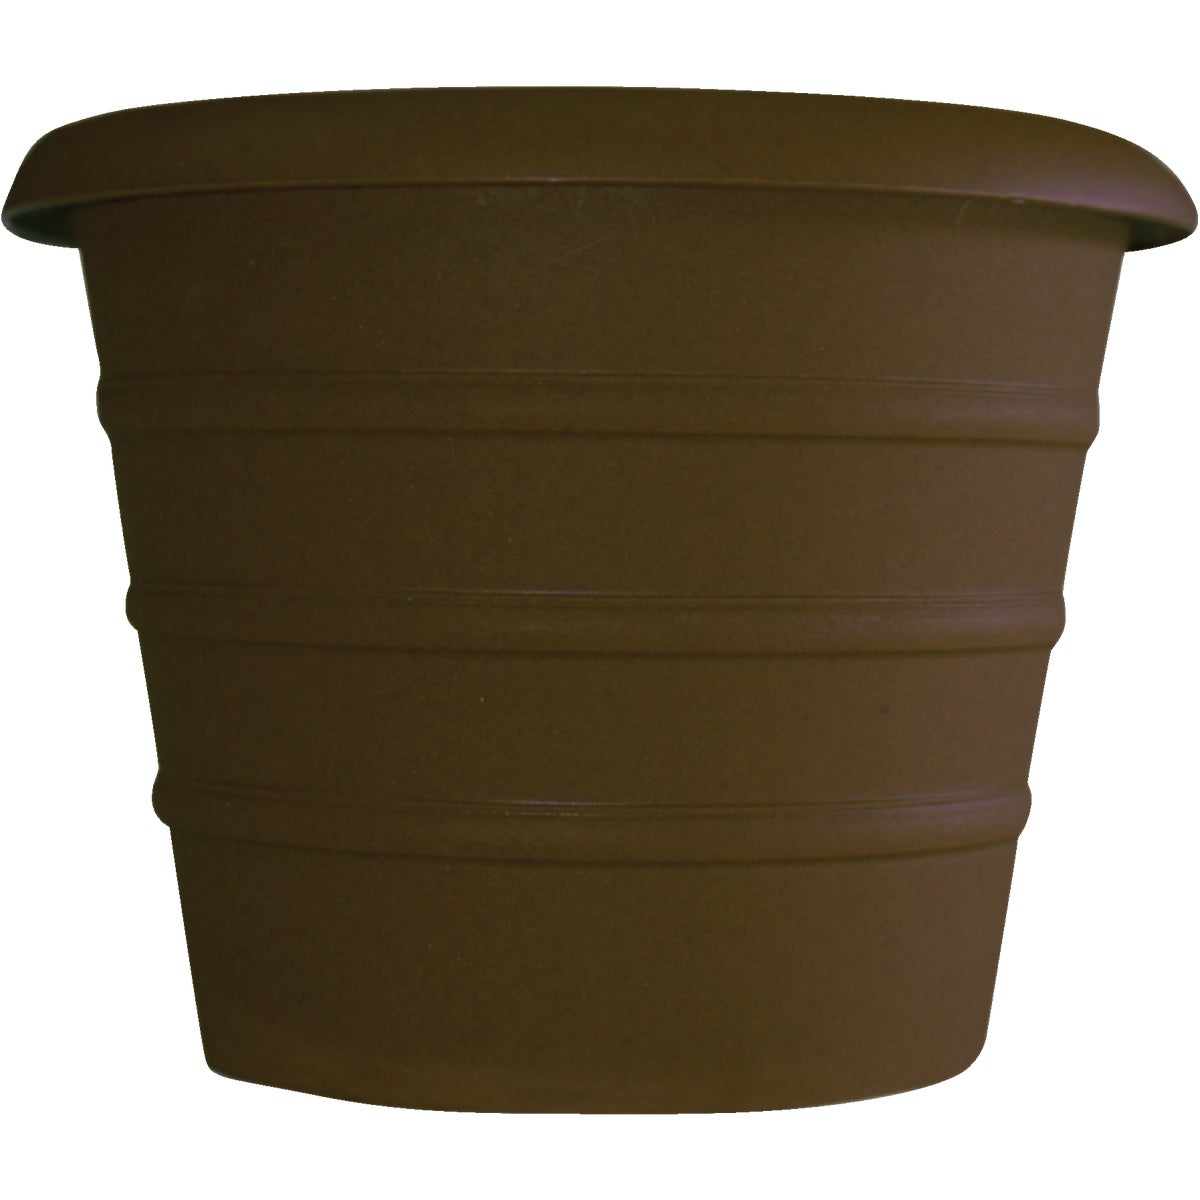 "6"" CHOC SELF WATER POT - MSA06001E21 by Myers Industries Inc"